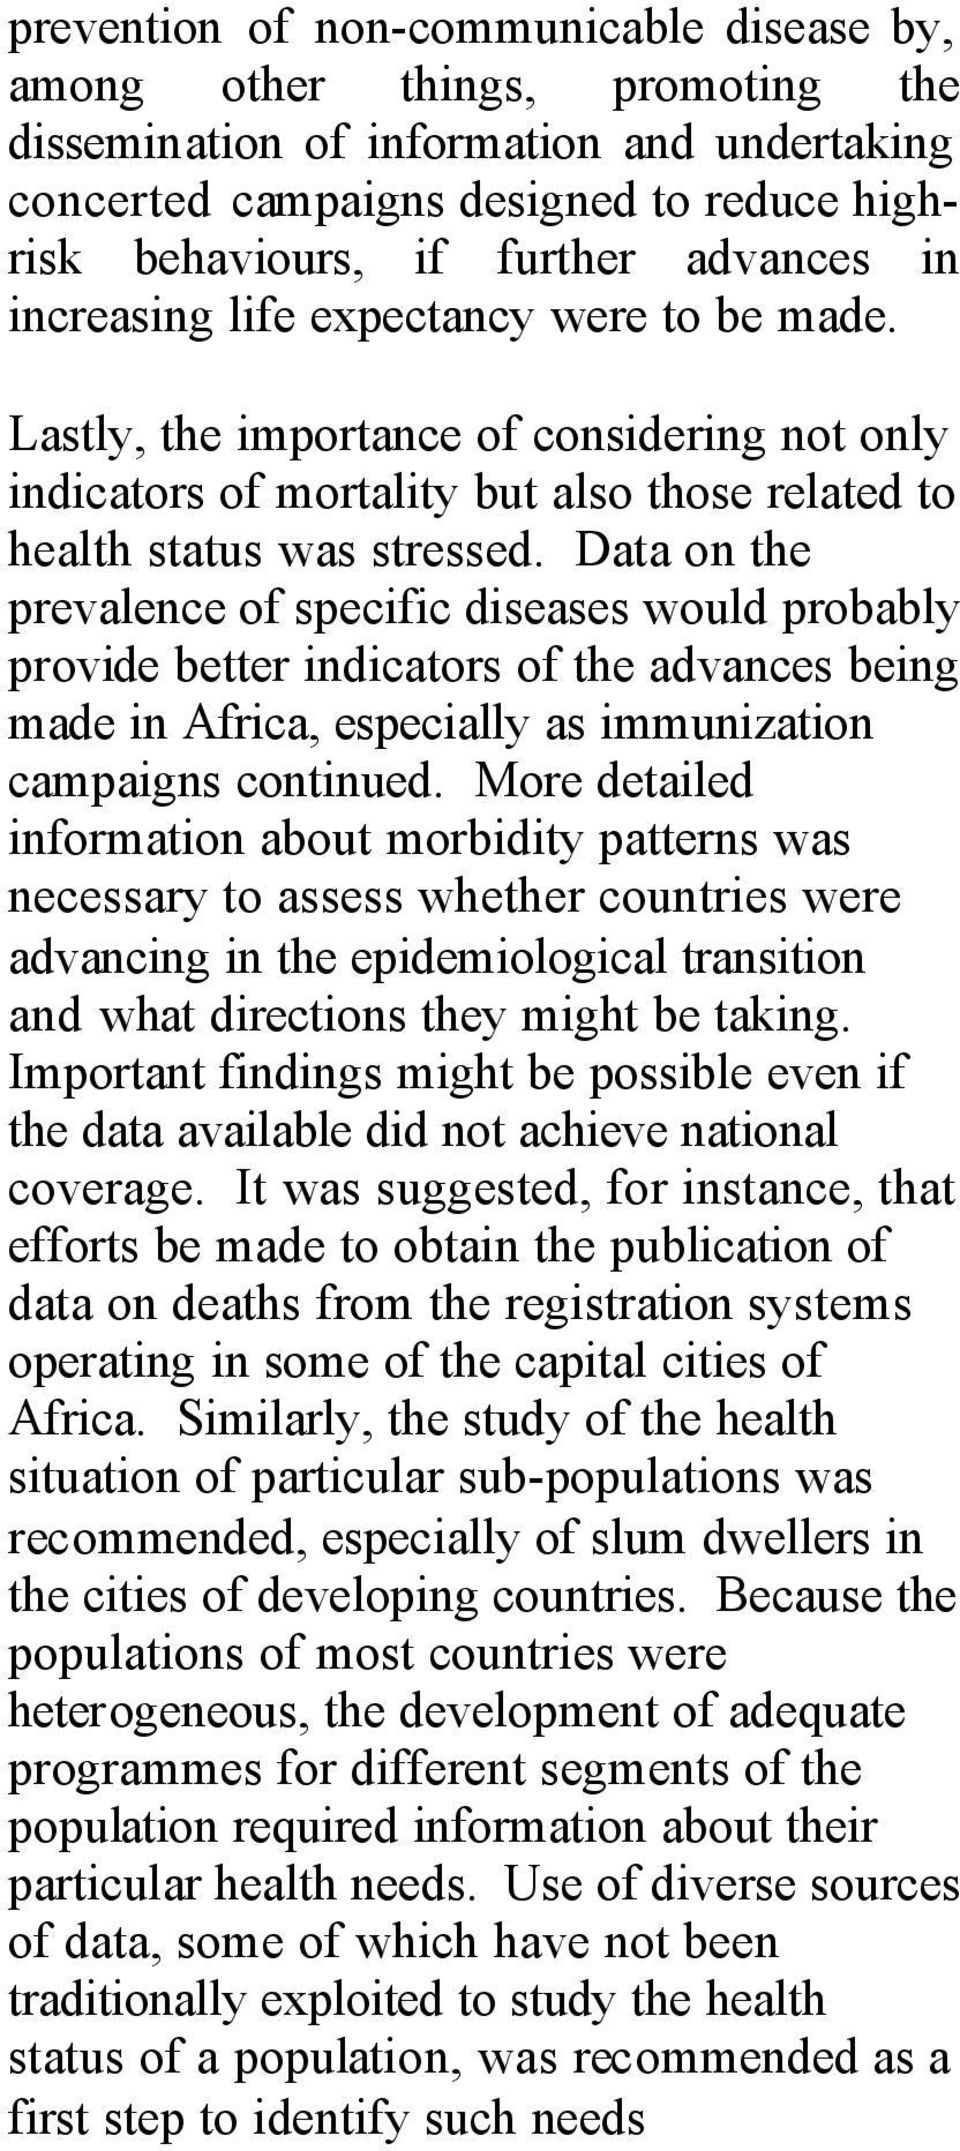 Data on the prevalence of specific diseases would probably provide better indicators of the advances being made in Africa, especially as immunization campaigns continued.